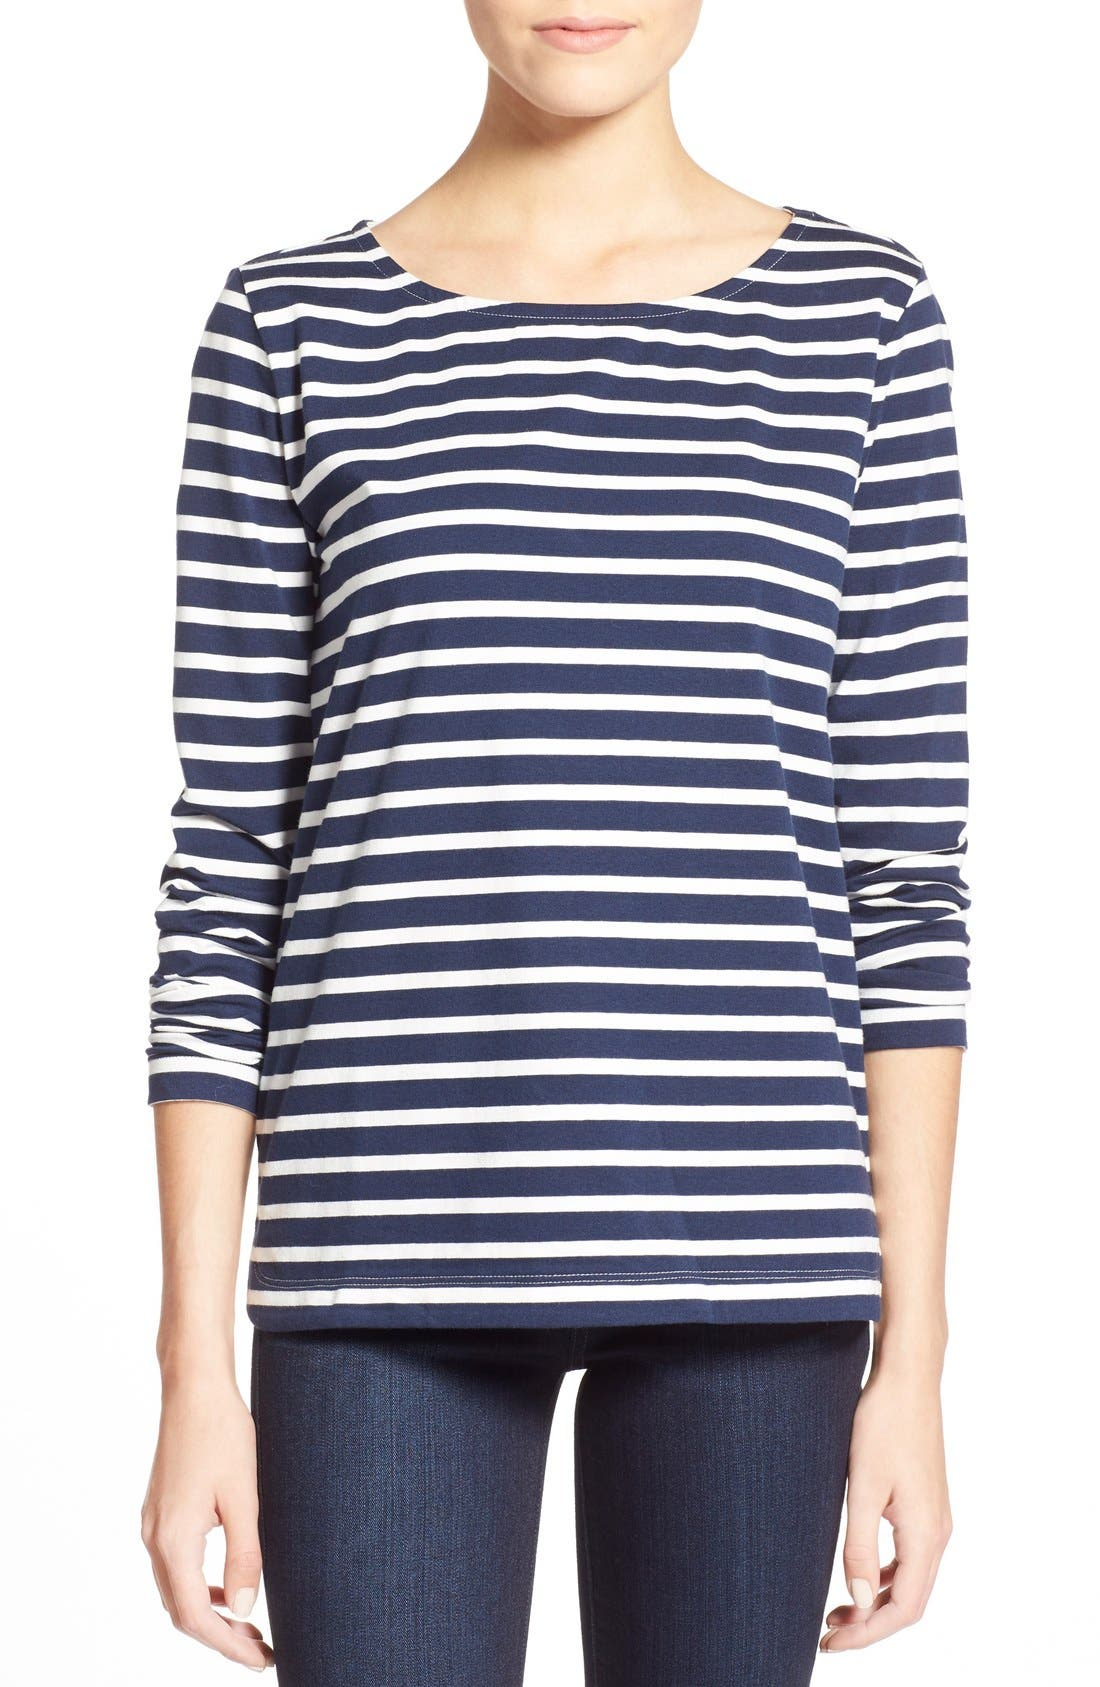 Alternate Image 1 Selected - Vineyard Vines Stripe Long Sleeve Knit Tee